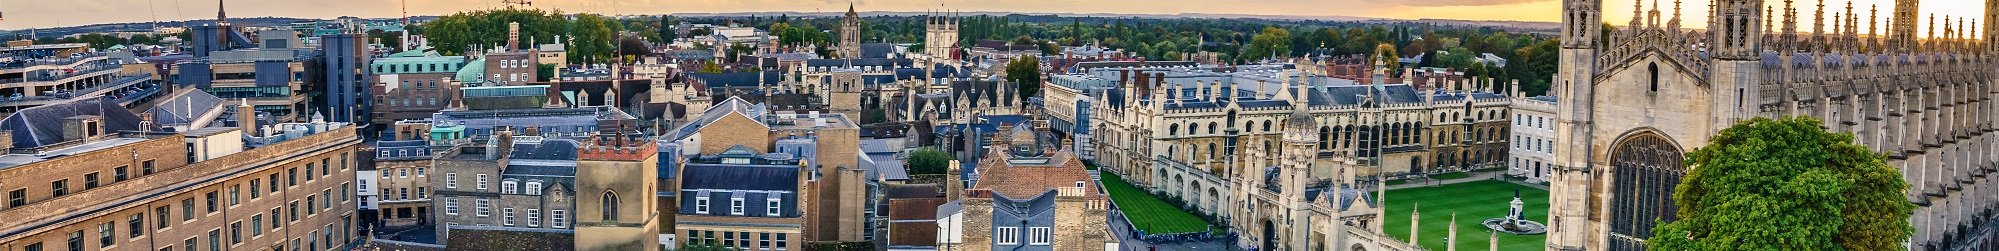 How to enjoy a budget break in the heart of Cambridge